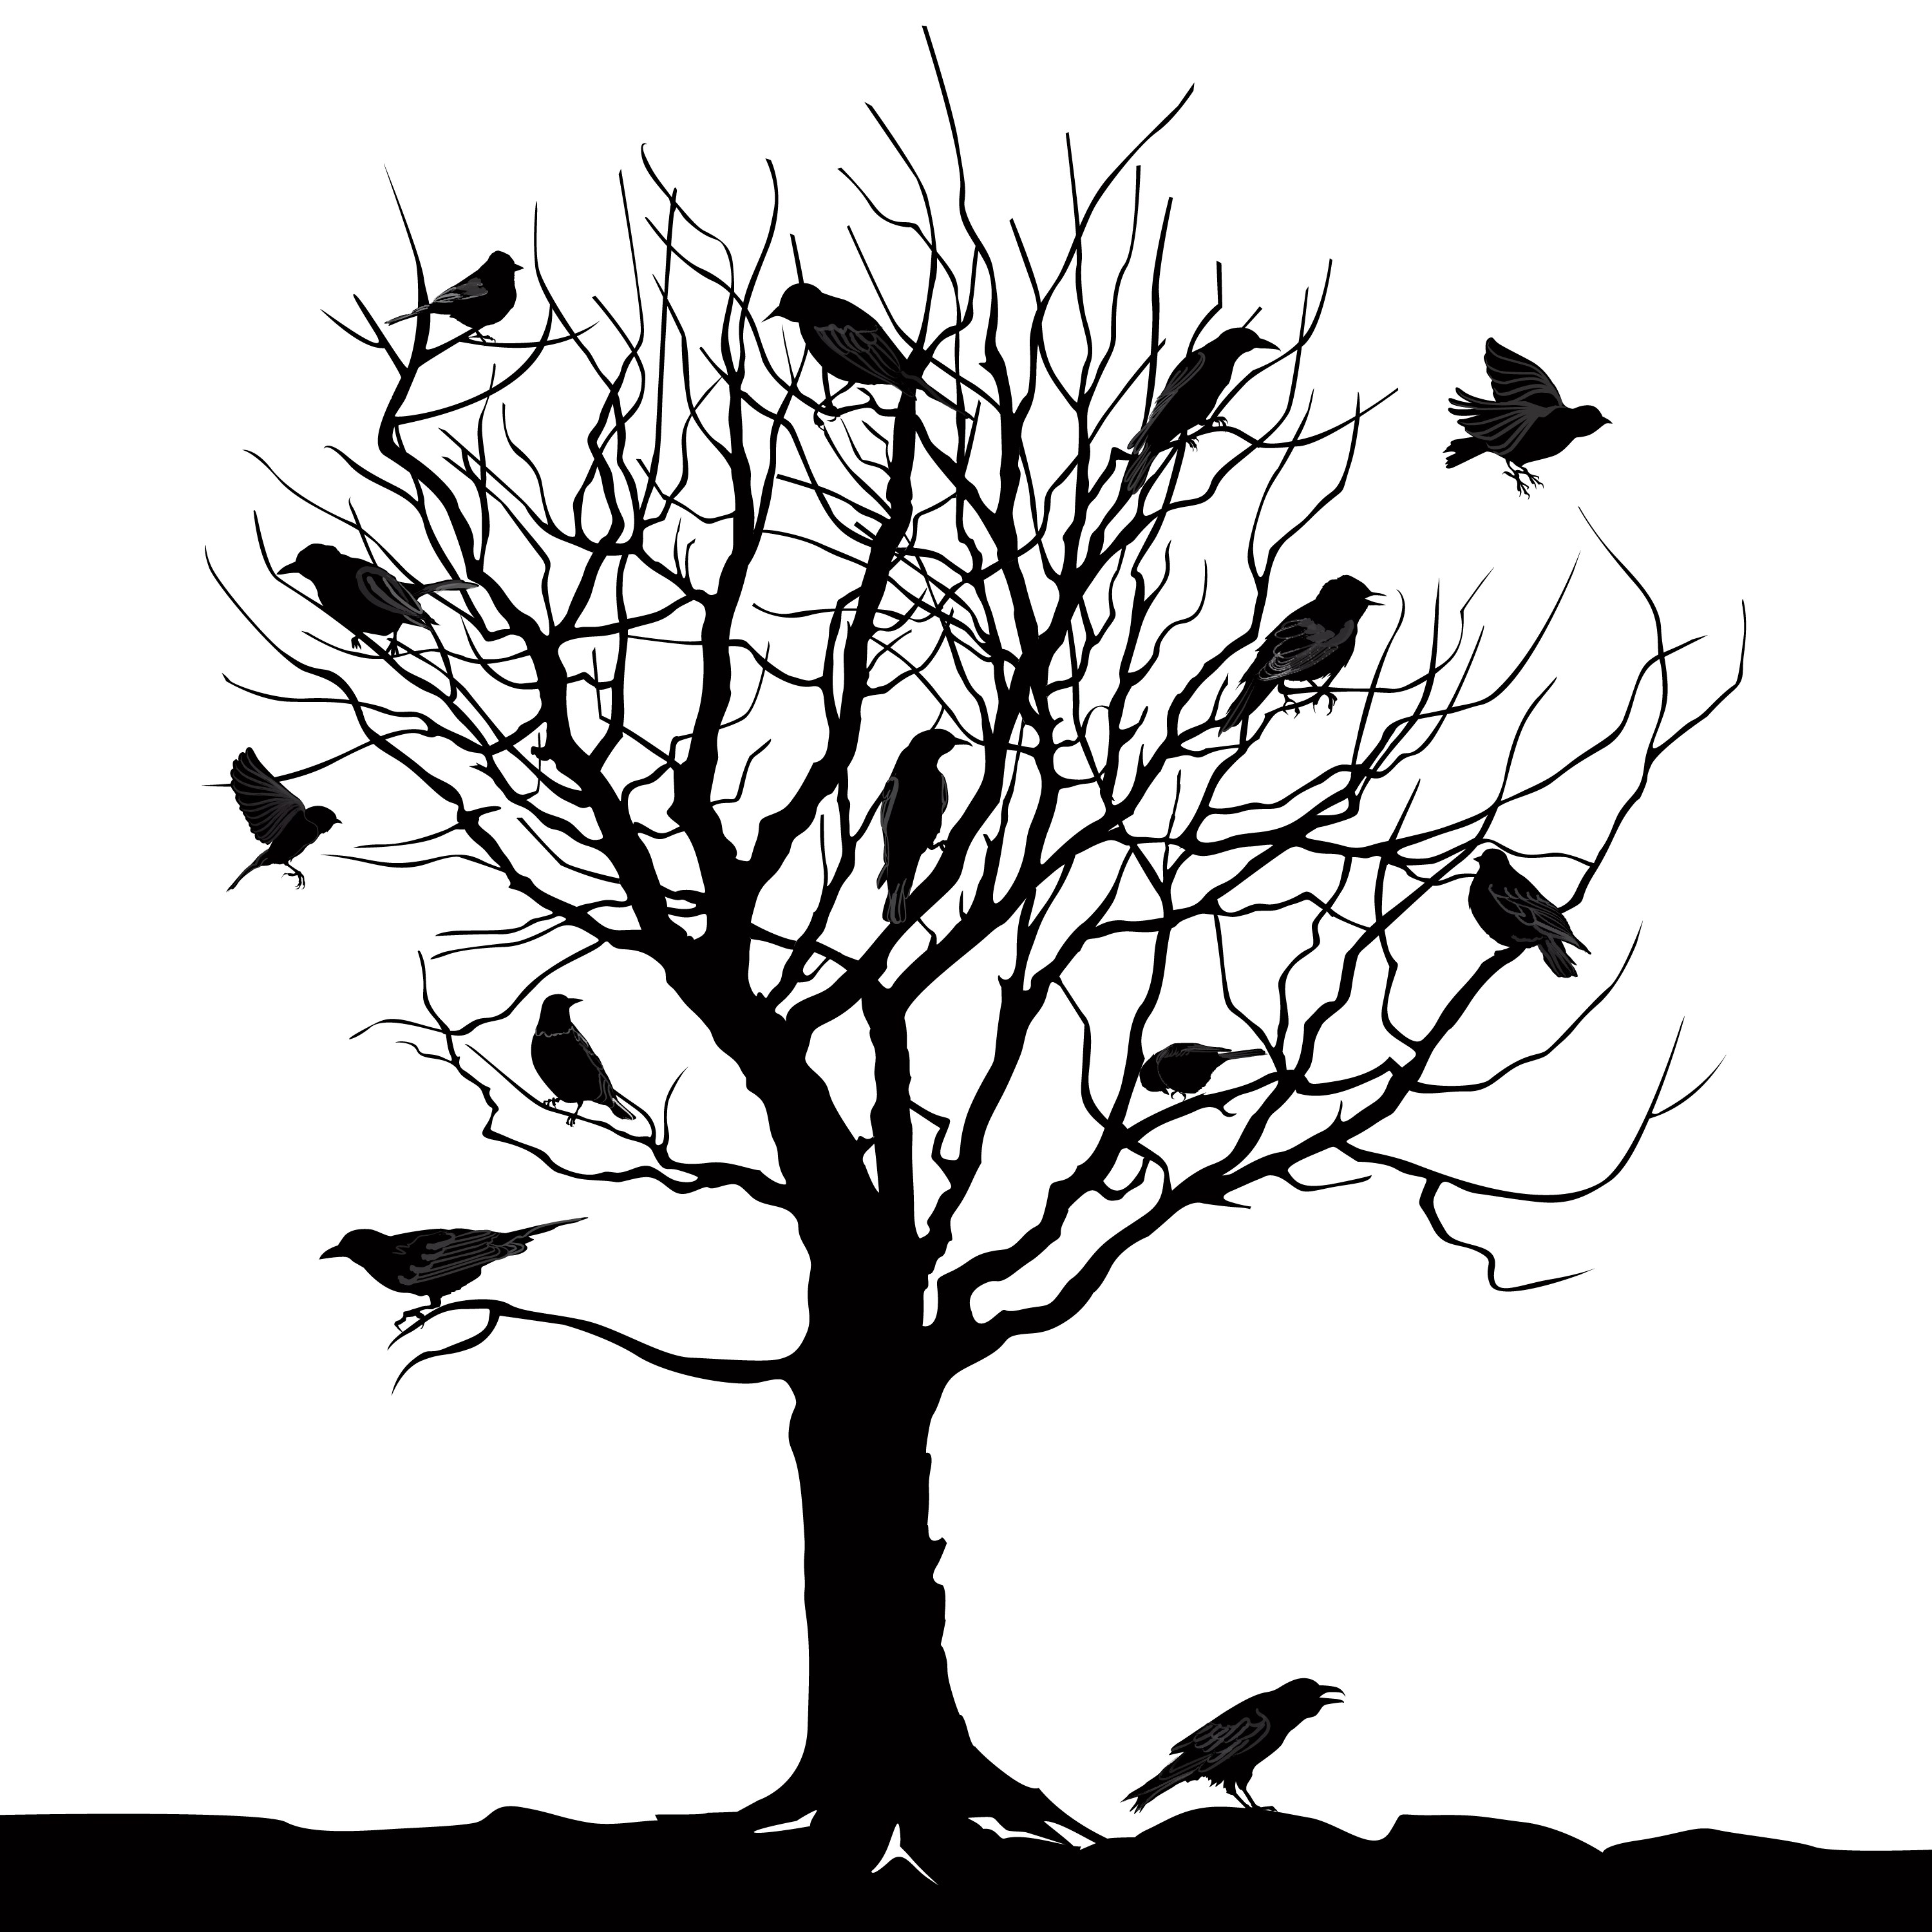 Birds Over Tree Forest Landscape Wild Nature Silhouette